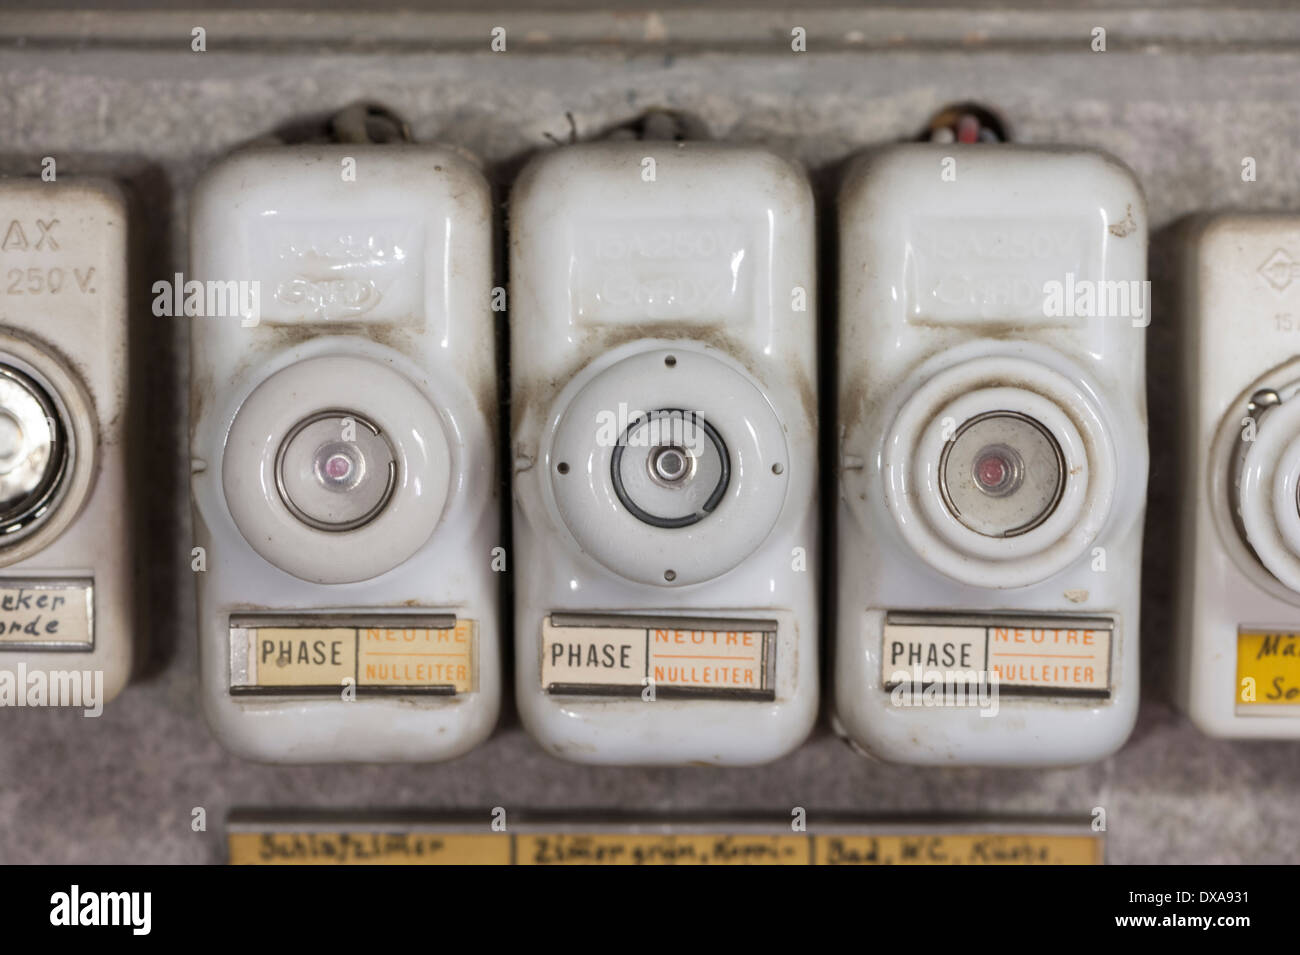 fuse box, old fuses stock photo, royalty free image 123046941 alamy Old Fuse Box close up of an array of old fashioned lead fuses in a household fuse old fuse box